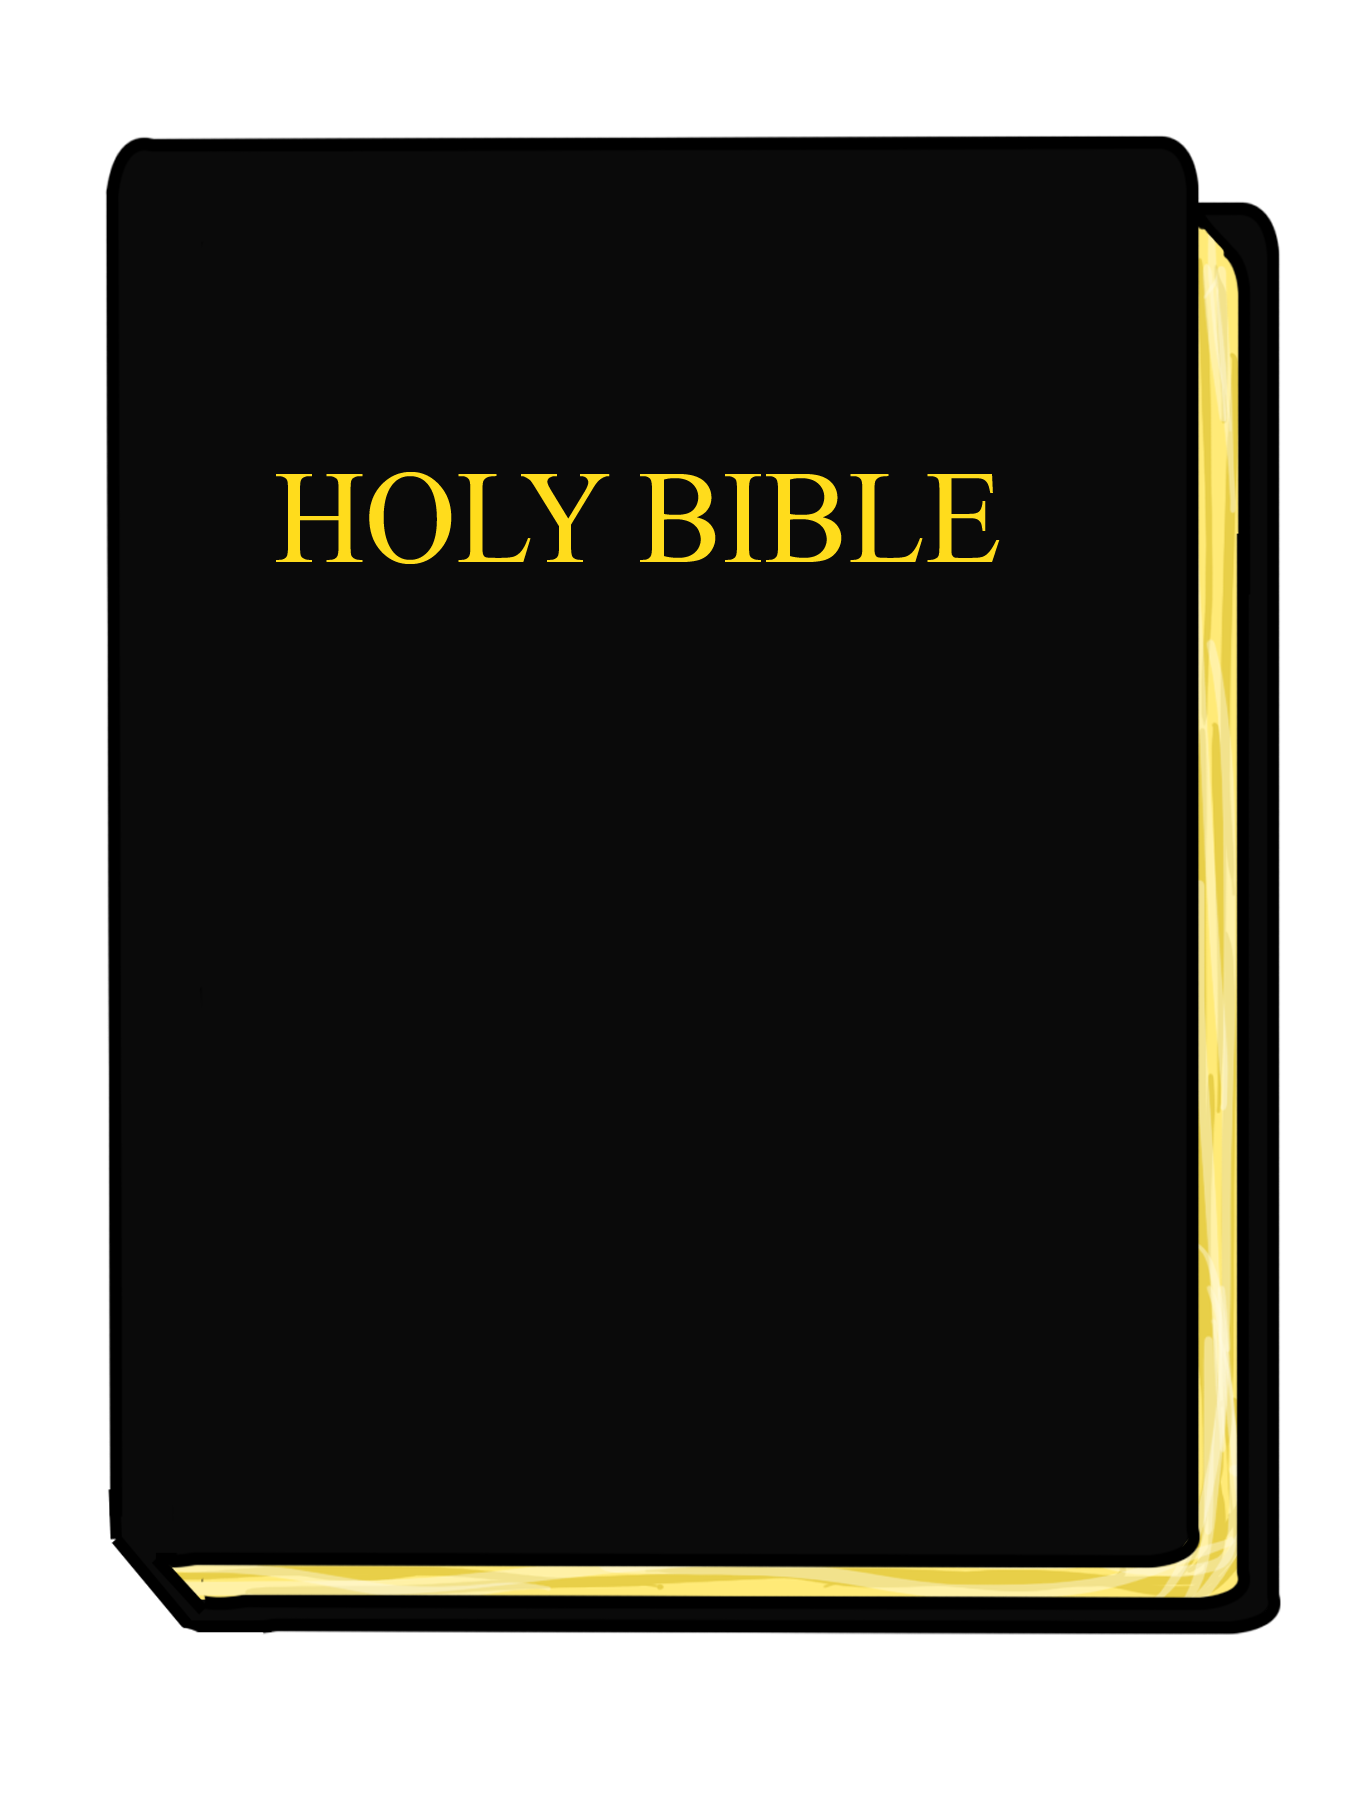 free to use public domain bible clip art bible pinterest rh pinterest com clipart of bible verses clipart of bible verses